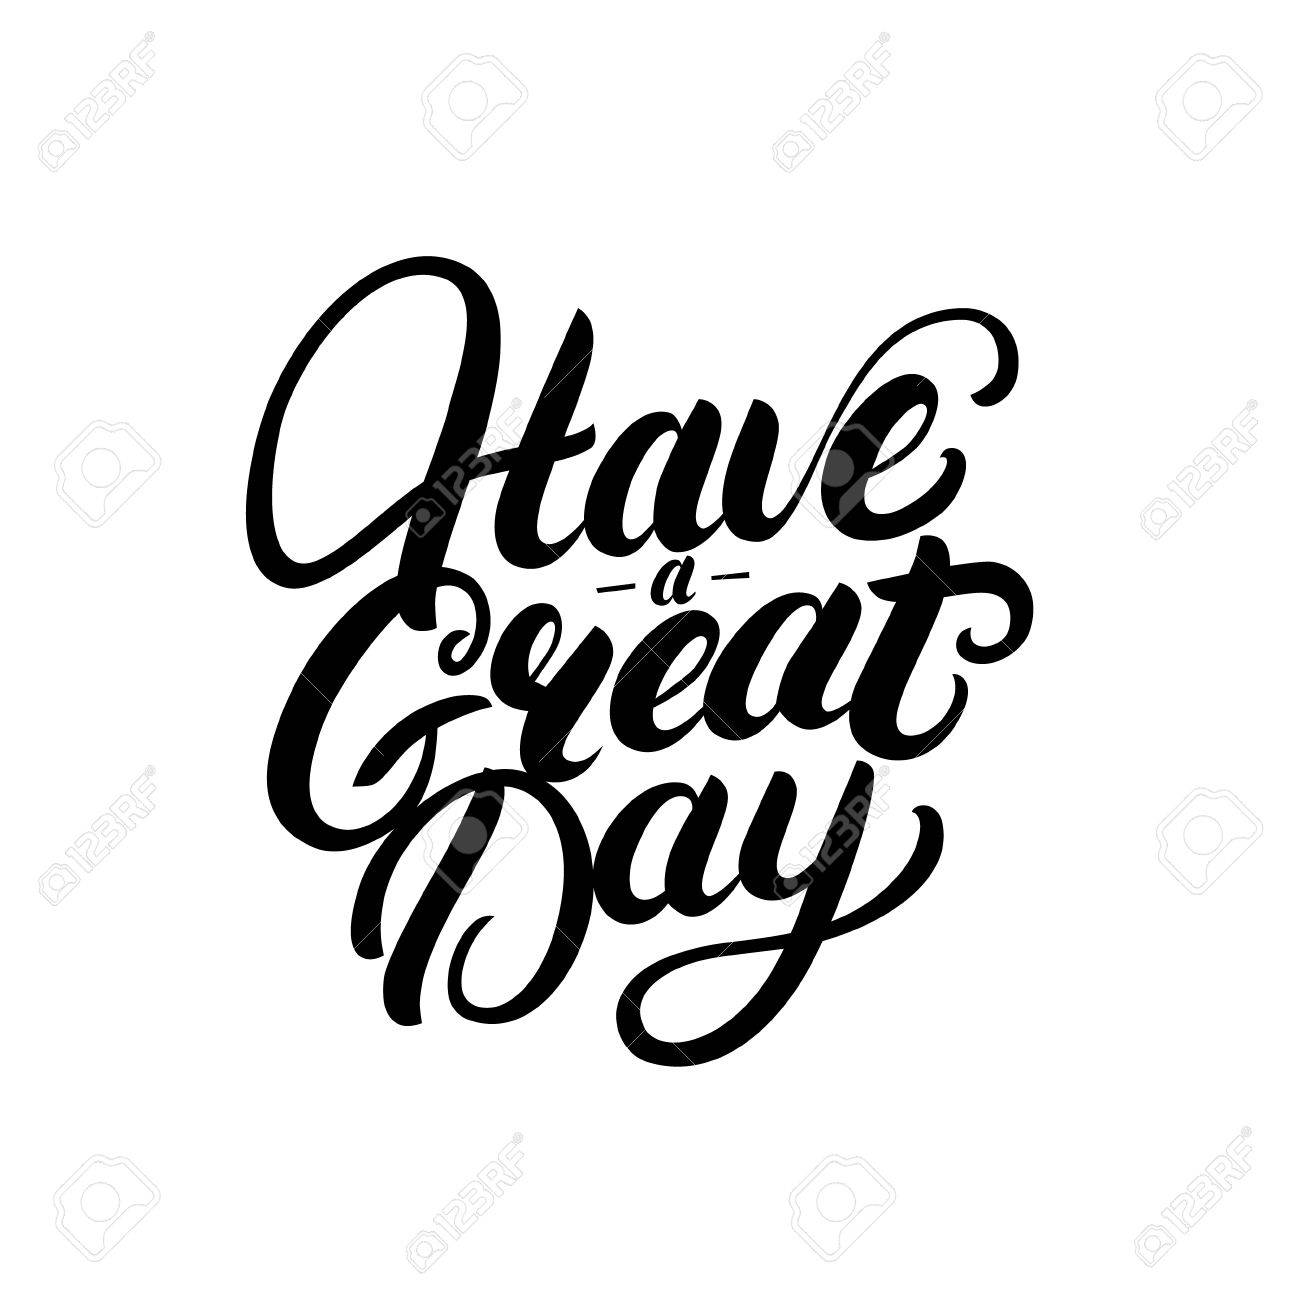 have a great day hand written lettering royalty free cliparts rh 123rf com have a good day clipart have a great day clipart black and white